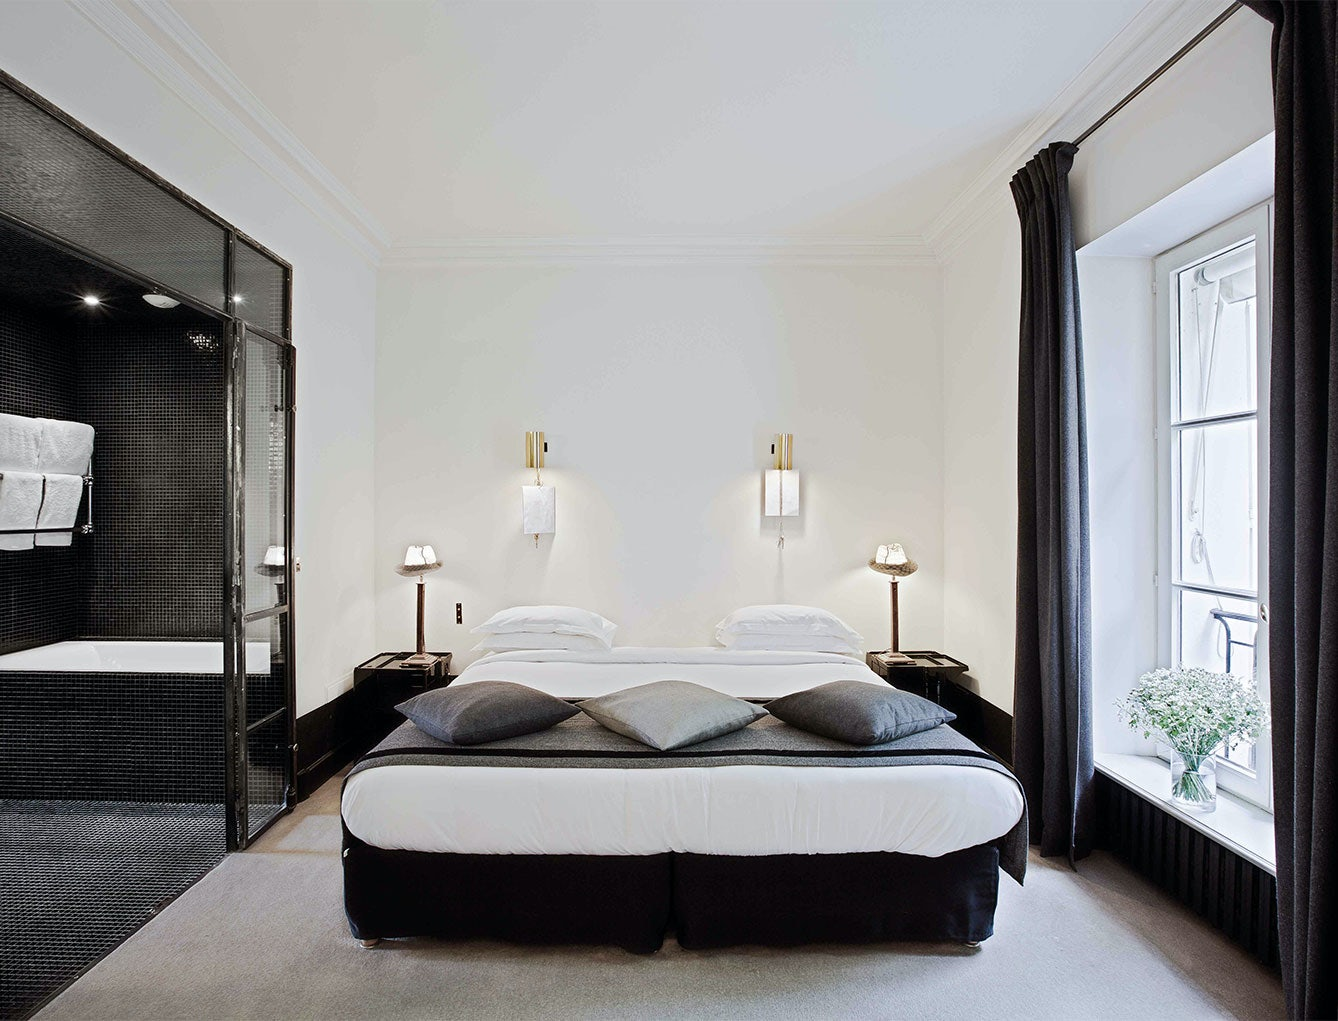 black and white room interior at Hotel Particulier Montmartre